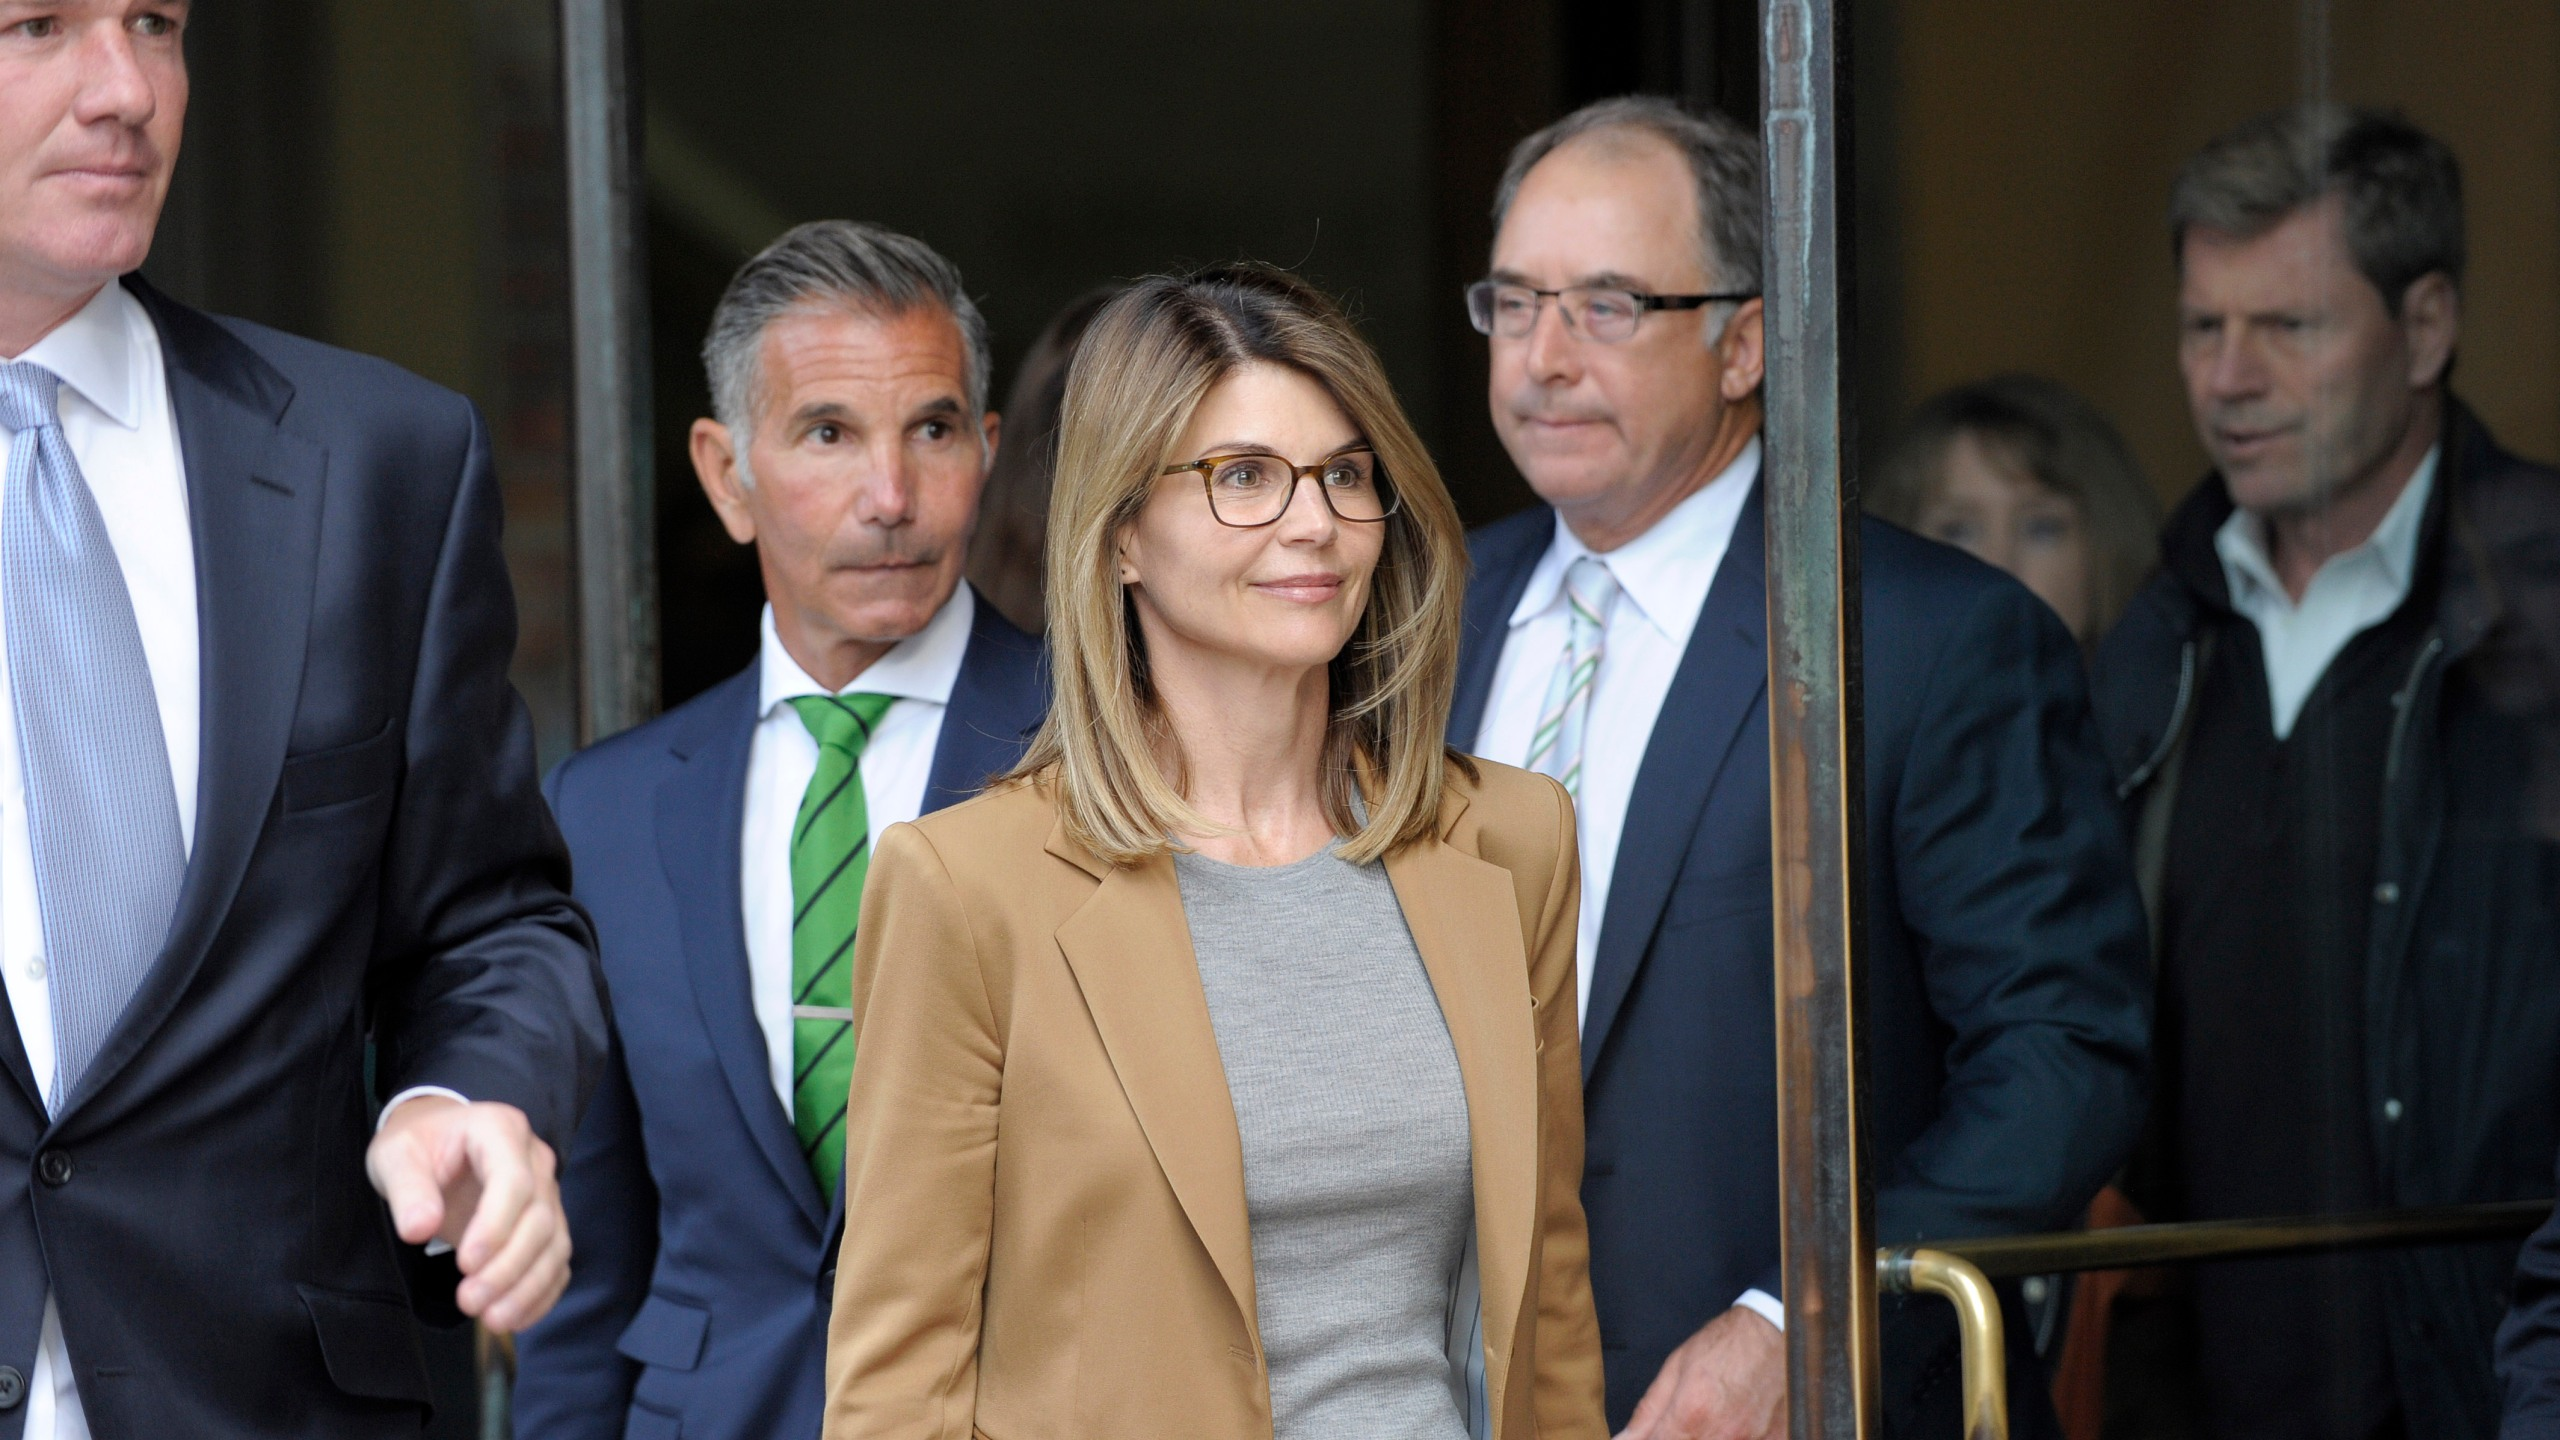 Actress Lori Loughlin exits the John Joseph Moakley Courthouse in Boston on April 3, 2019. (Credit: JOSEPH PREZIOSO/AFP/Getty Images)